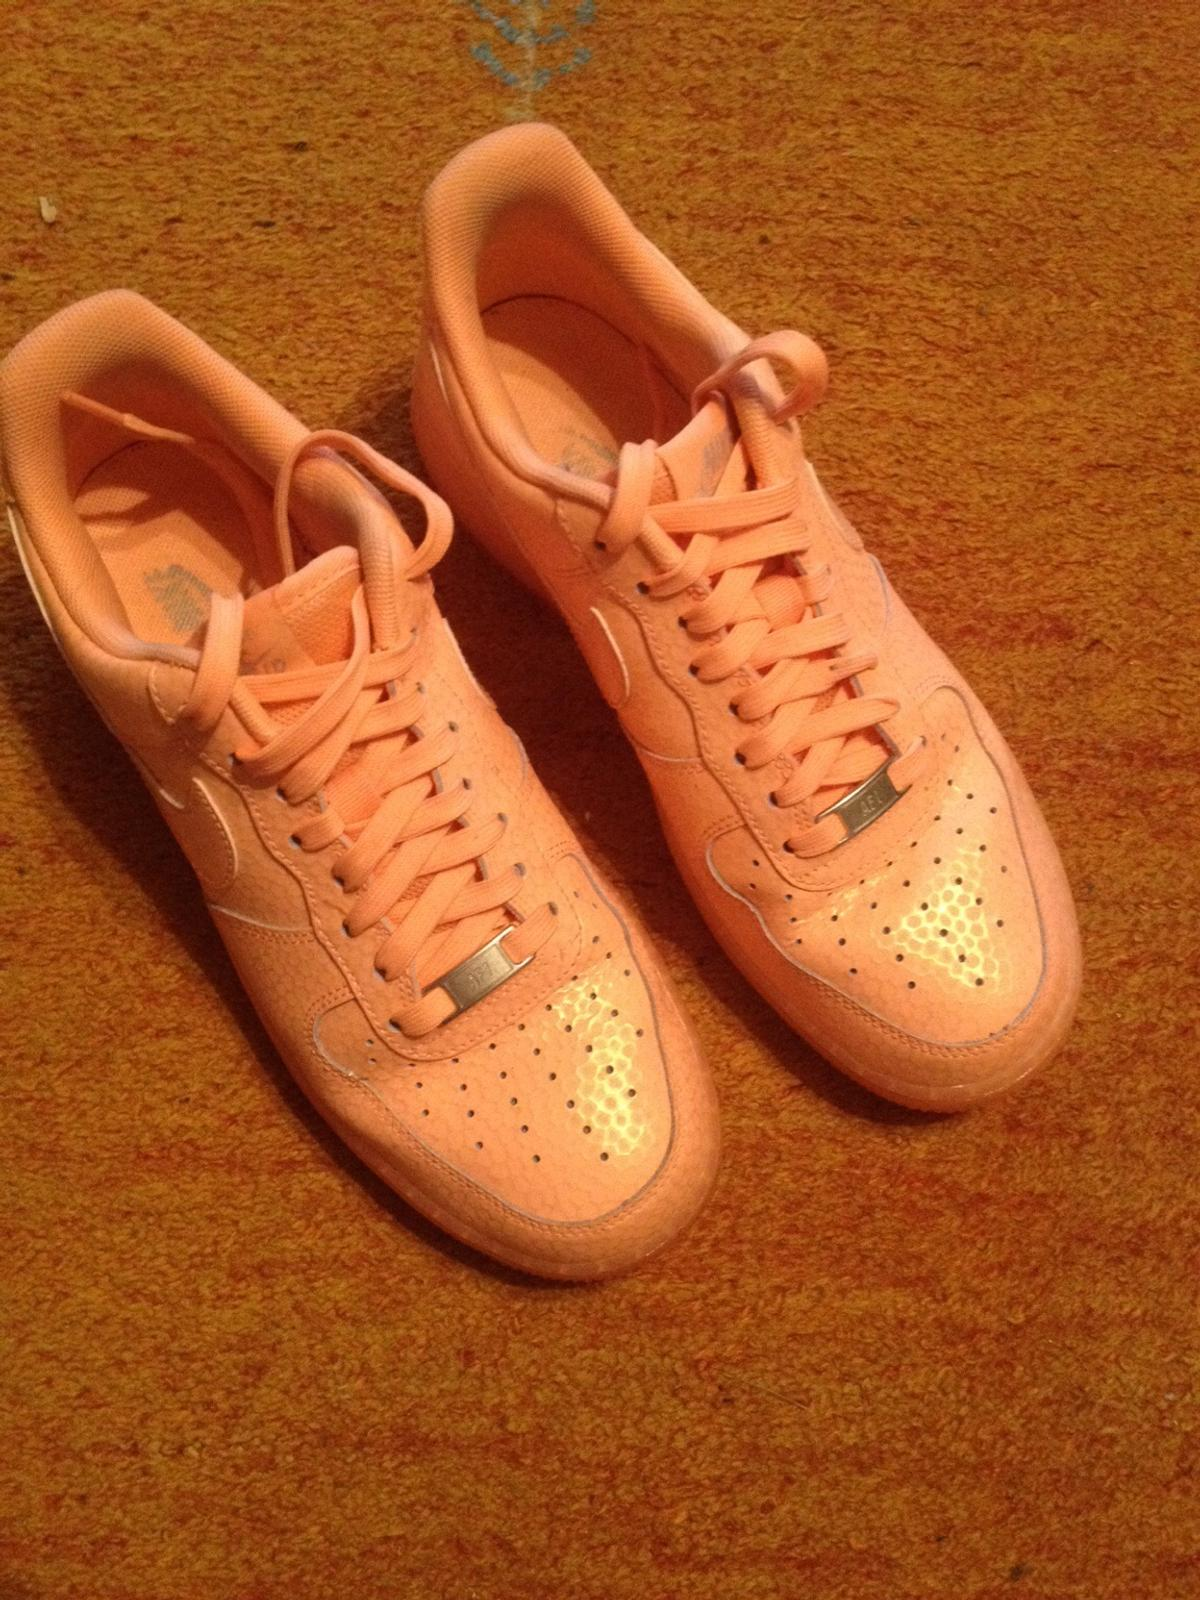 Nike Air Force Sunset Glow in 45665 Recklinghausen for